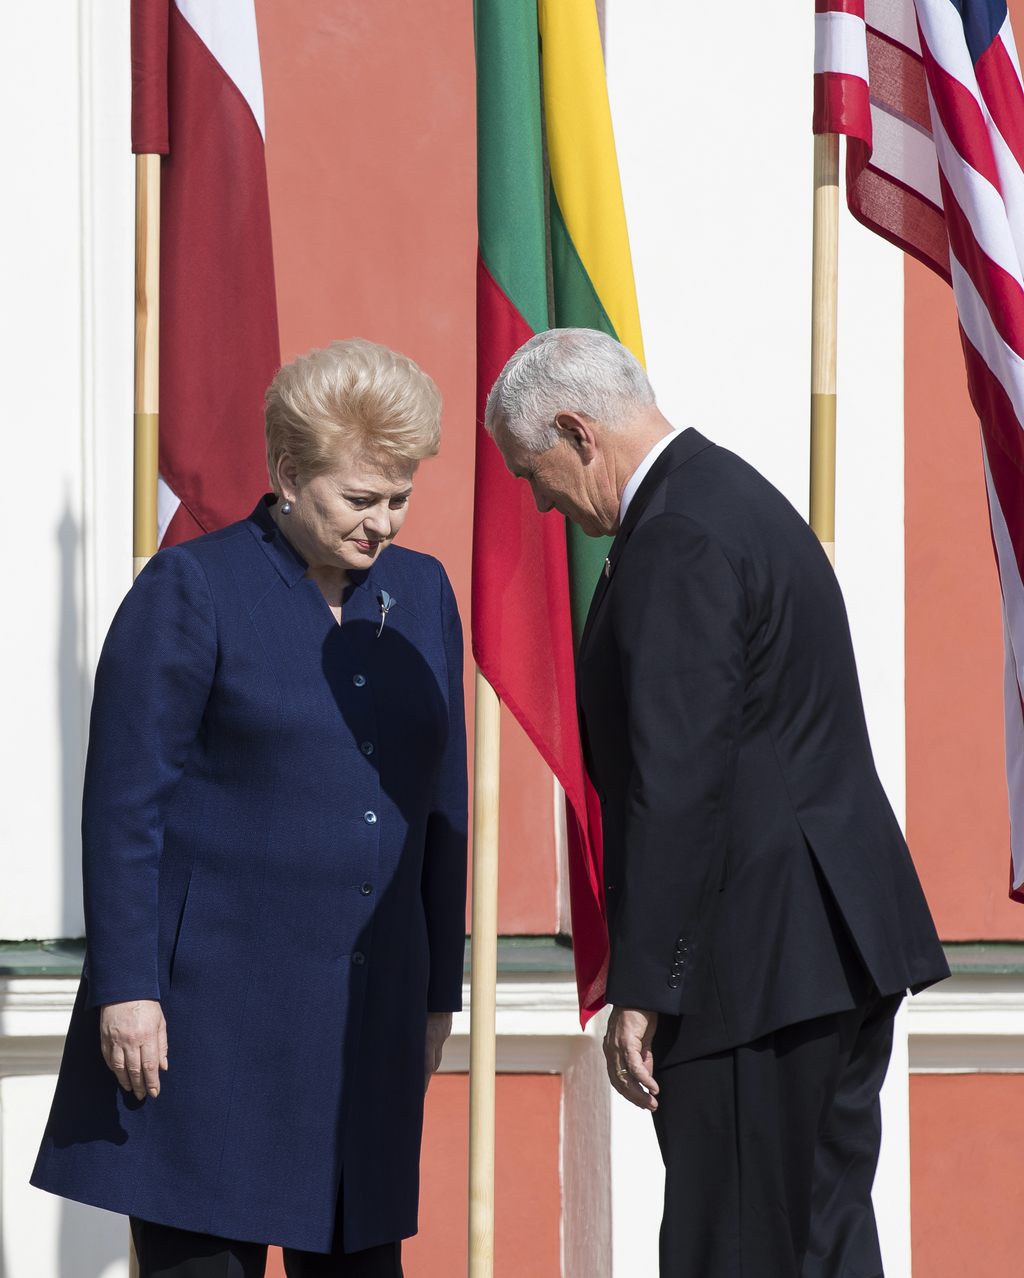 U.S. Vice President Mike Pence, right, and Lithuania's President Dalia Grybauskaite bow each other as they attend the official welcoming ceremony prio...